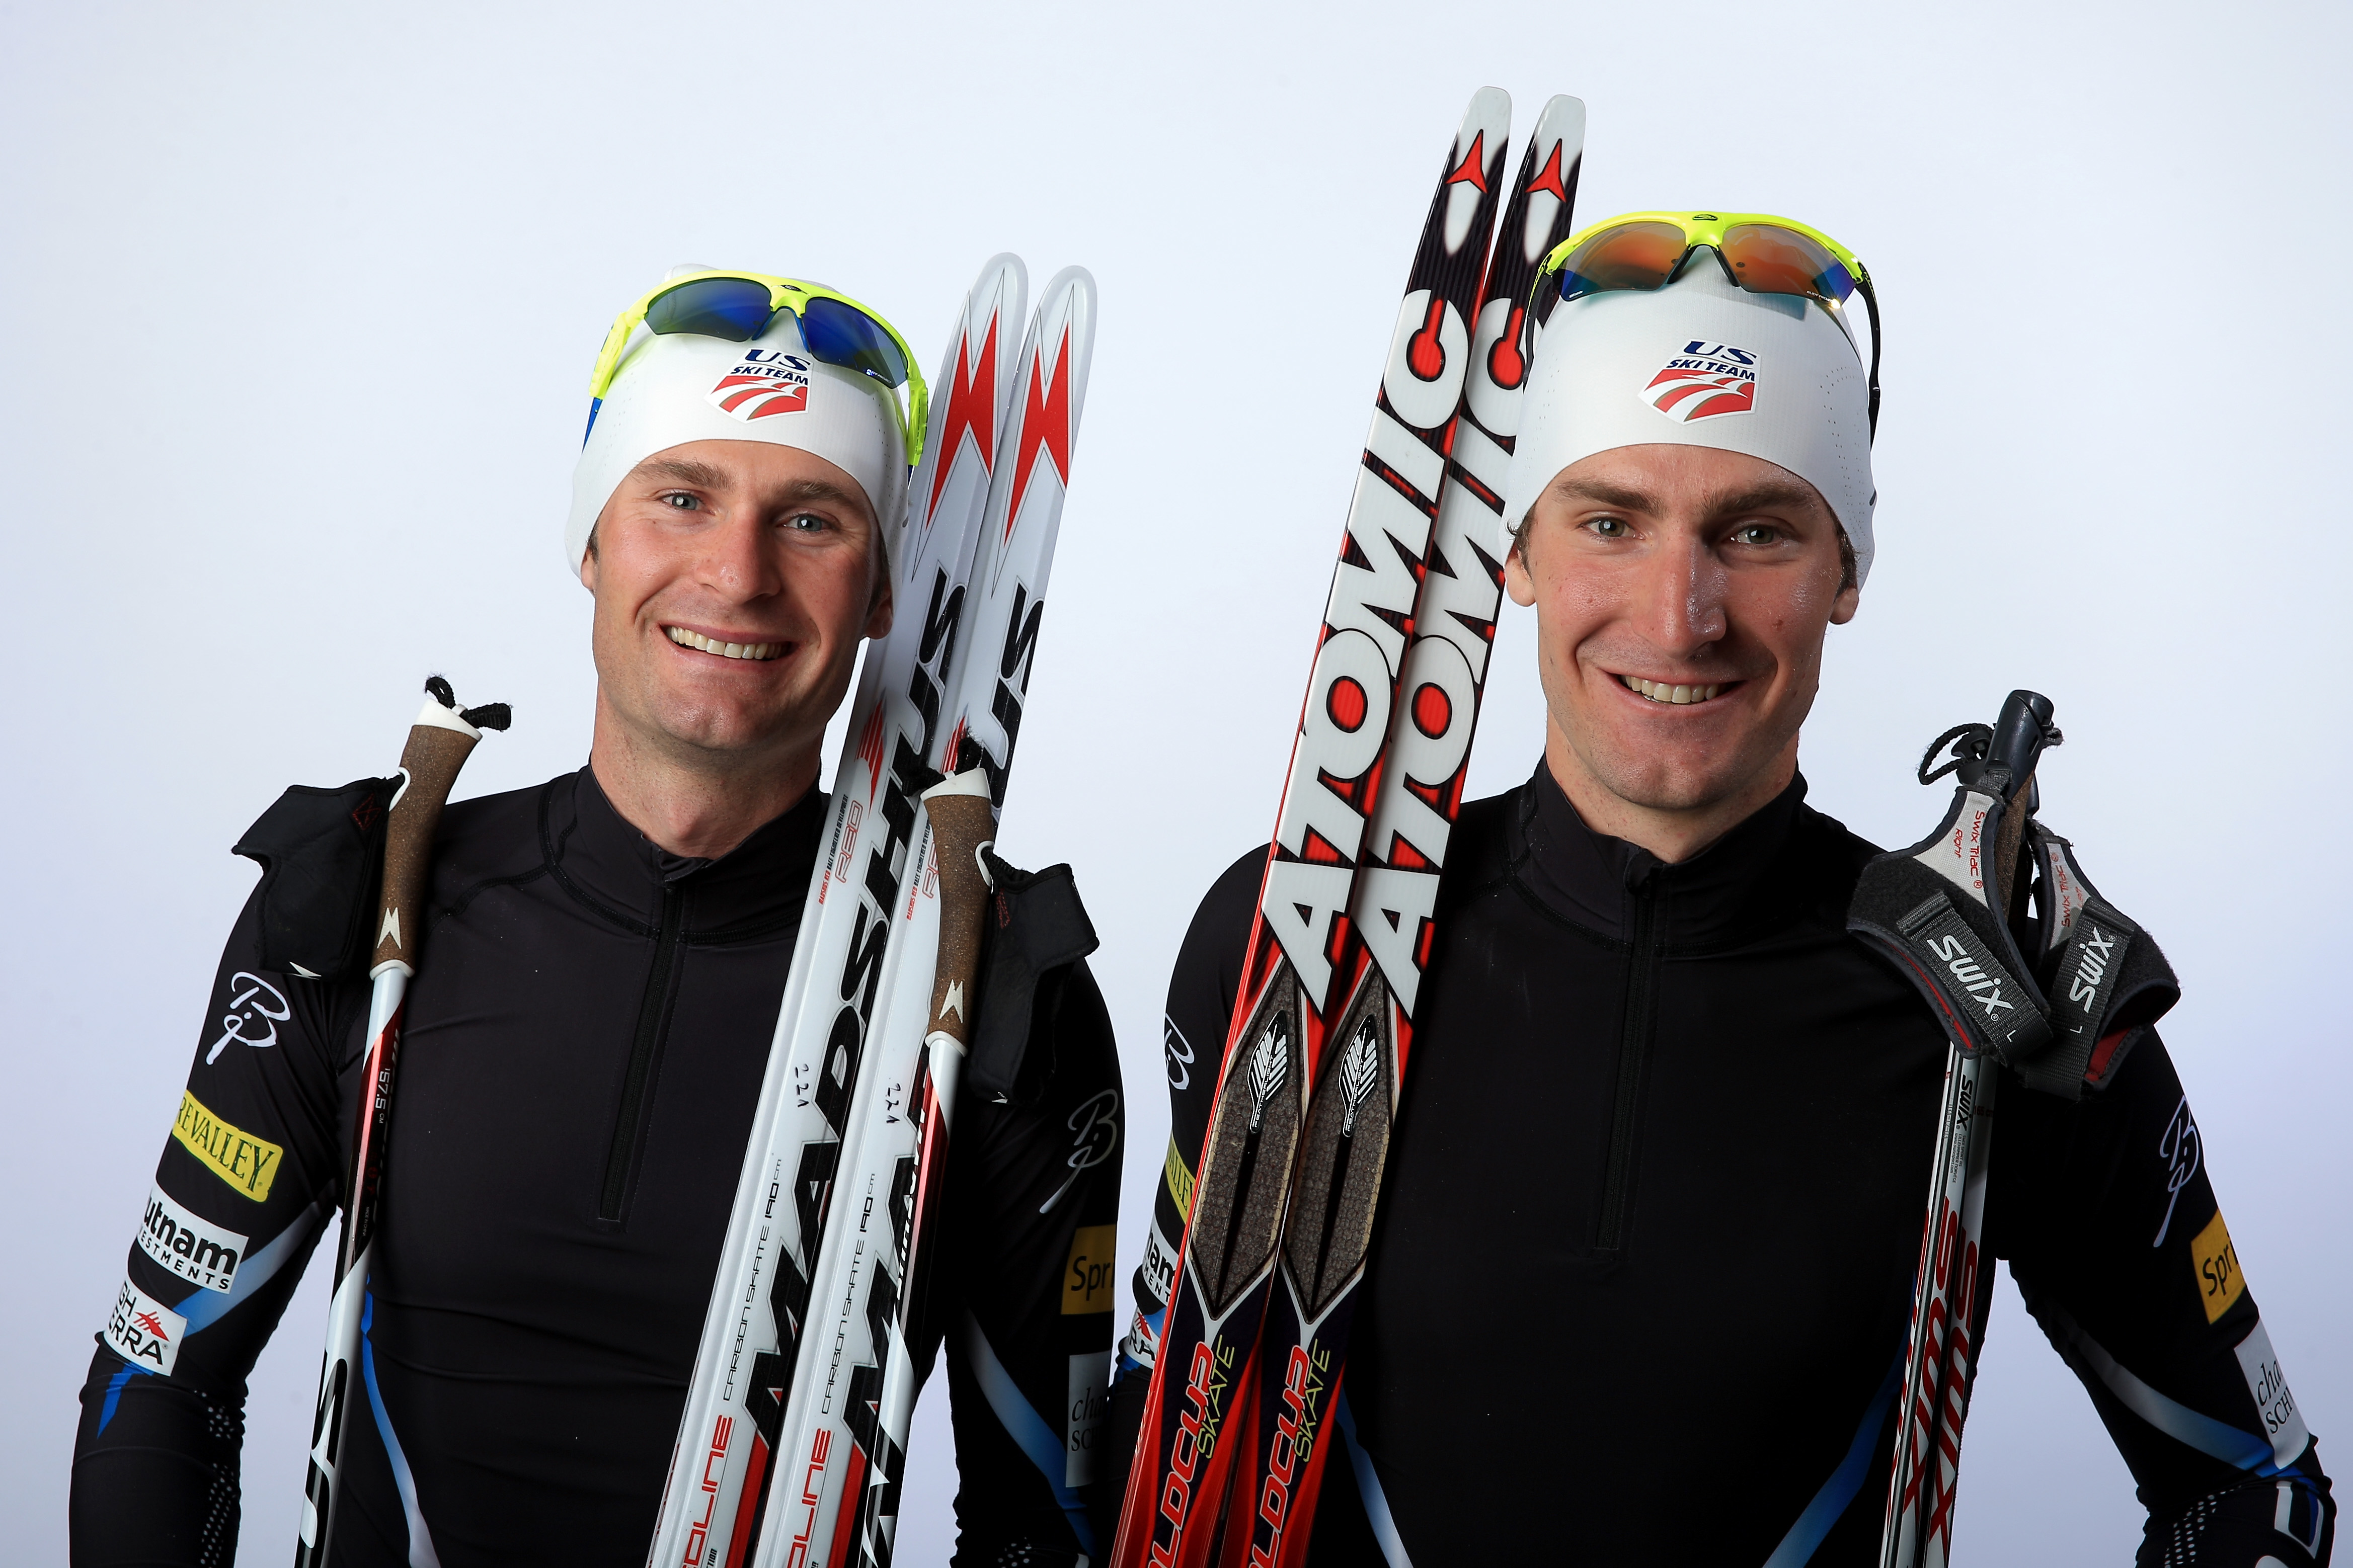 Nordic combined athletes Bryan Fletcher and Taylor Fletcher pose for a portrait during the USOC Media Summit ahead of the Sochi 2014 Winter Olympics on September 29, 2013 in Park City, Utah. Doug Pensinger—Getty Images.